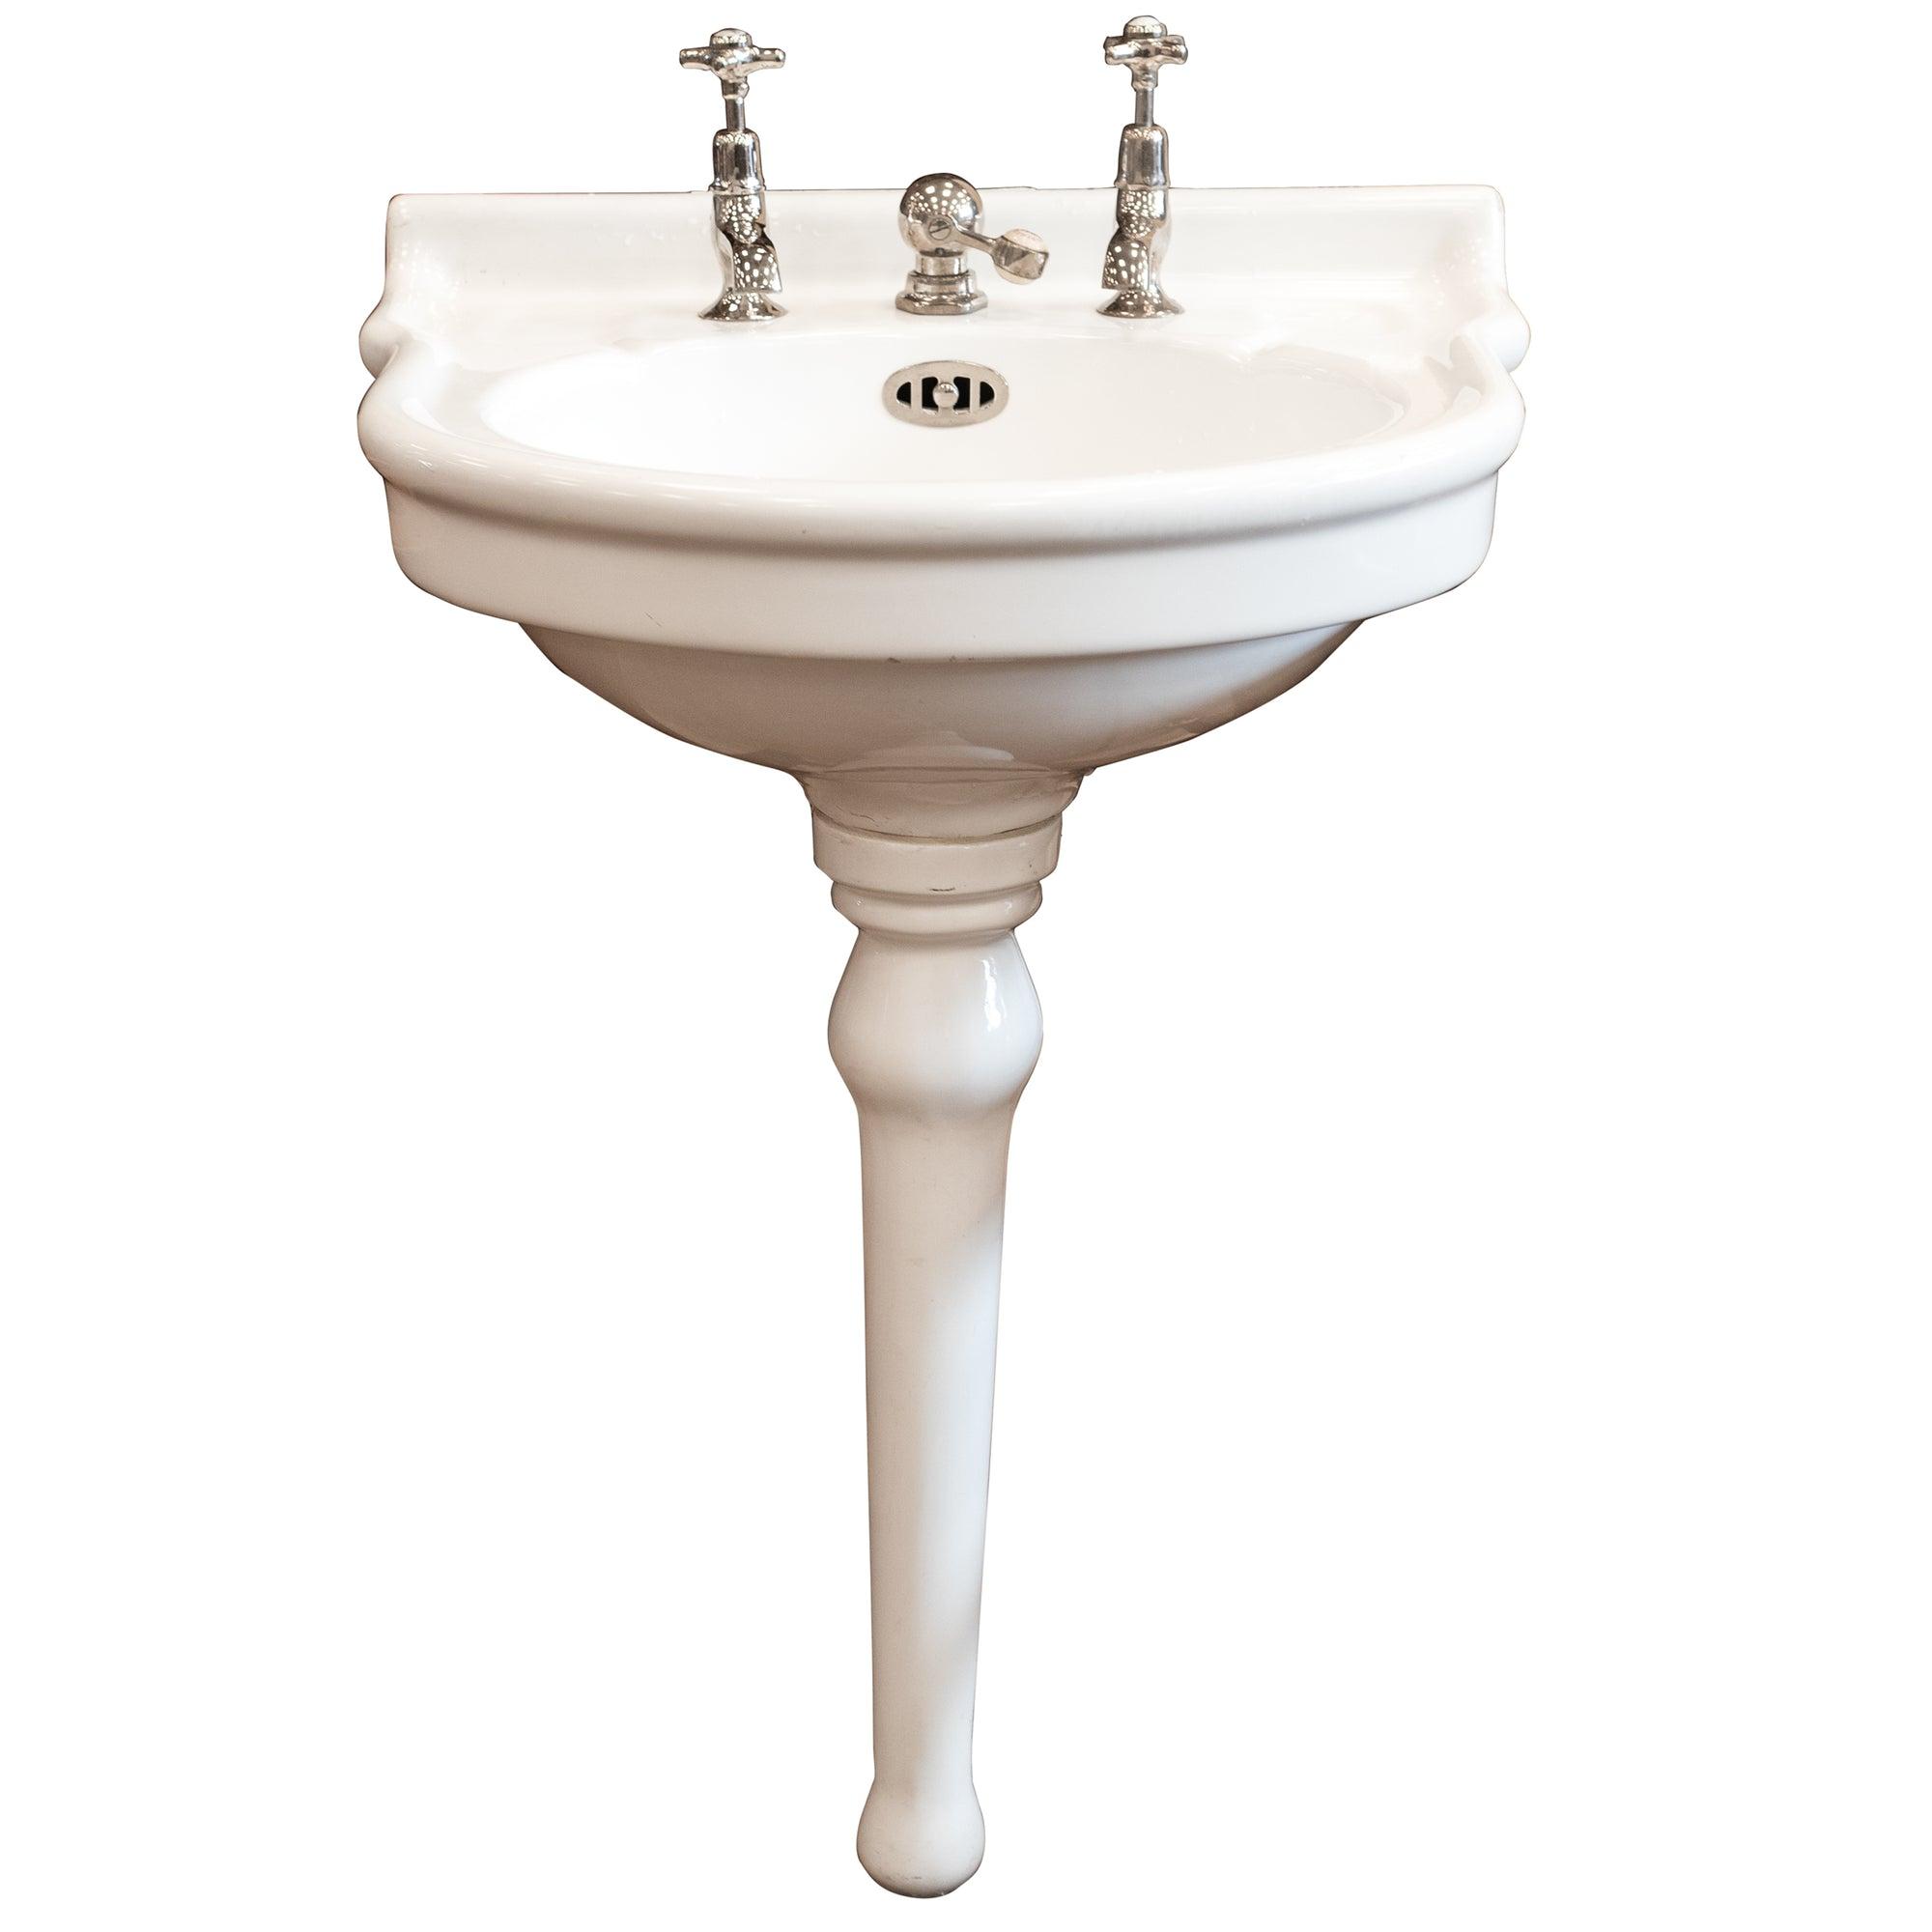 Reclaimed French Single Pedestal Sink Basin